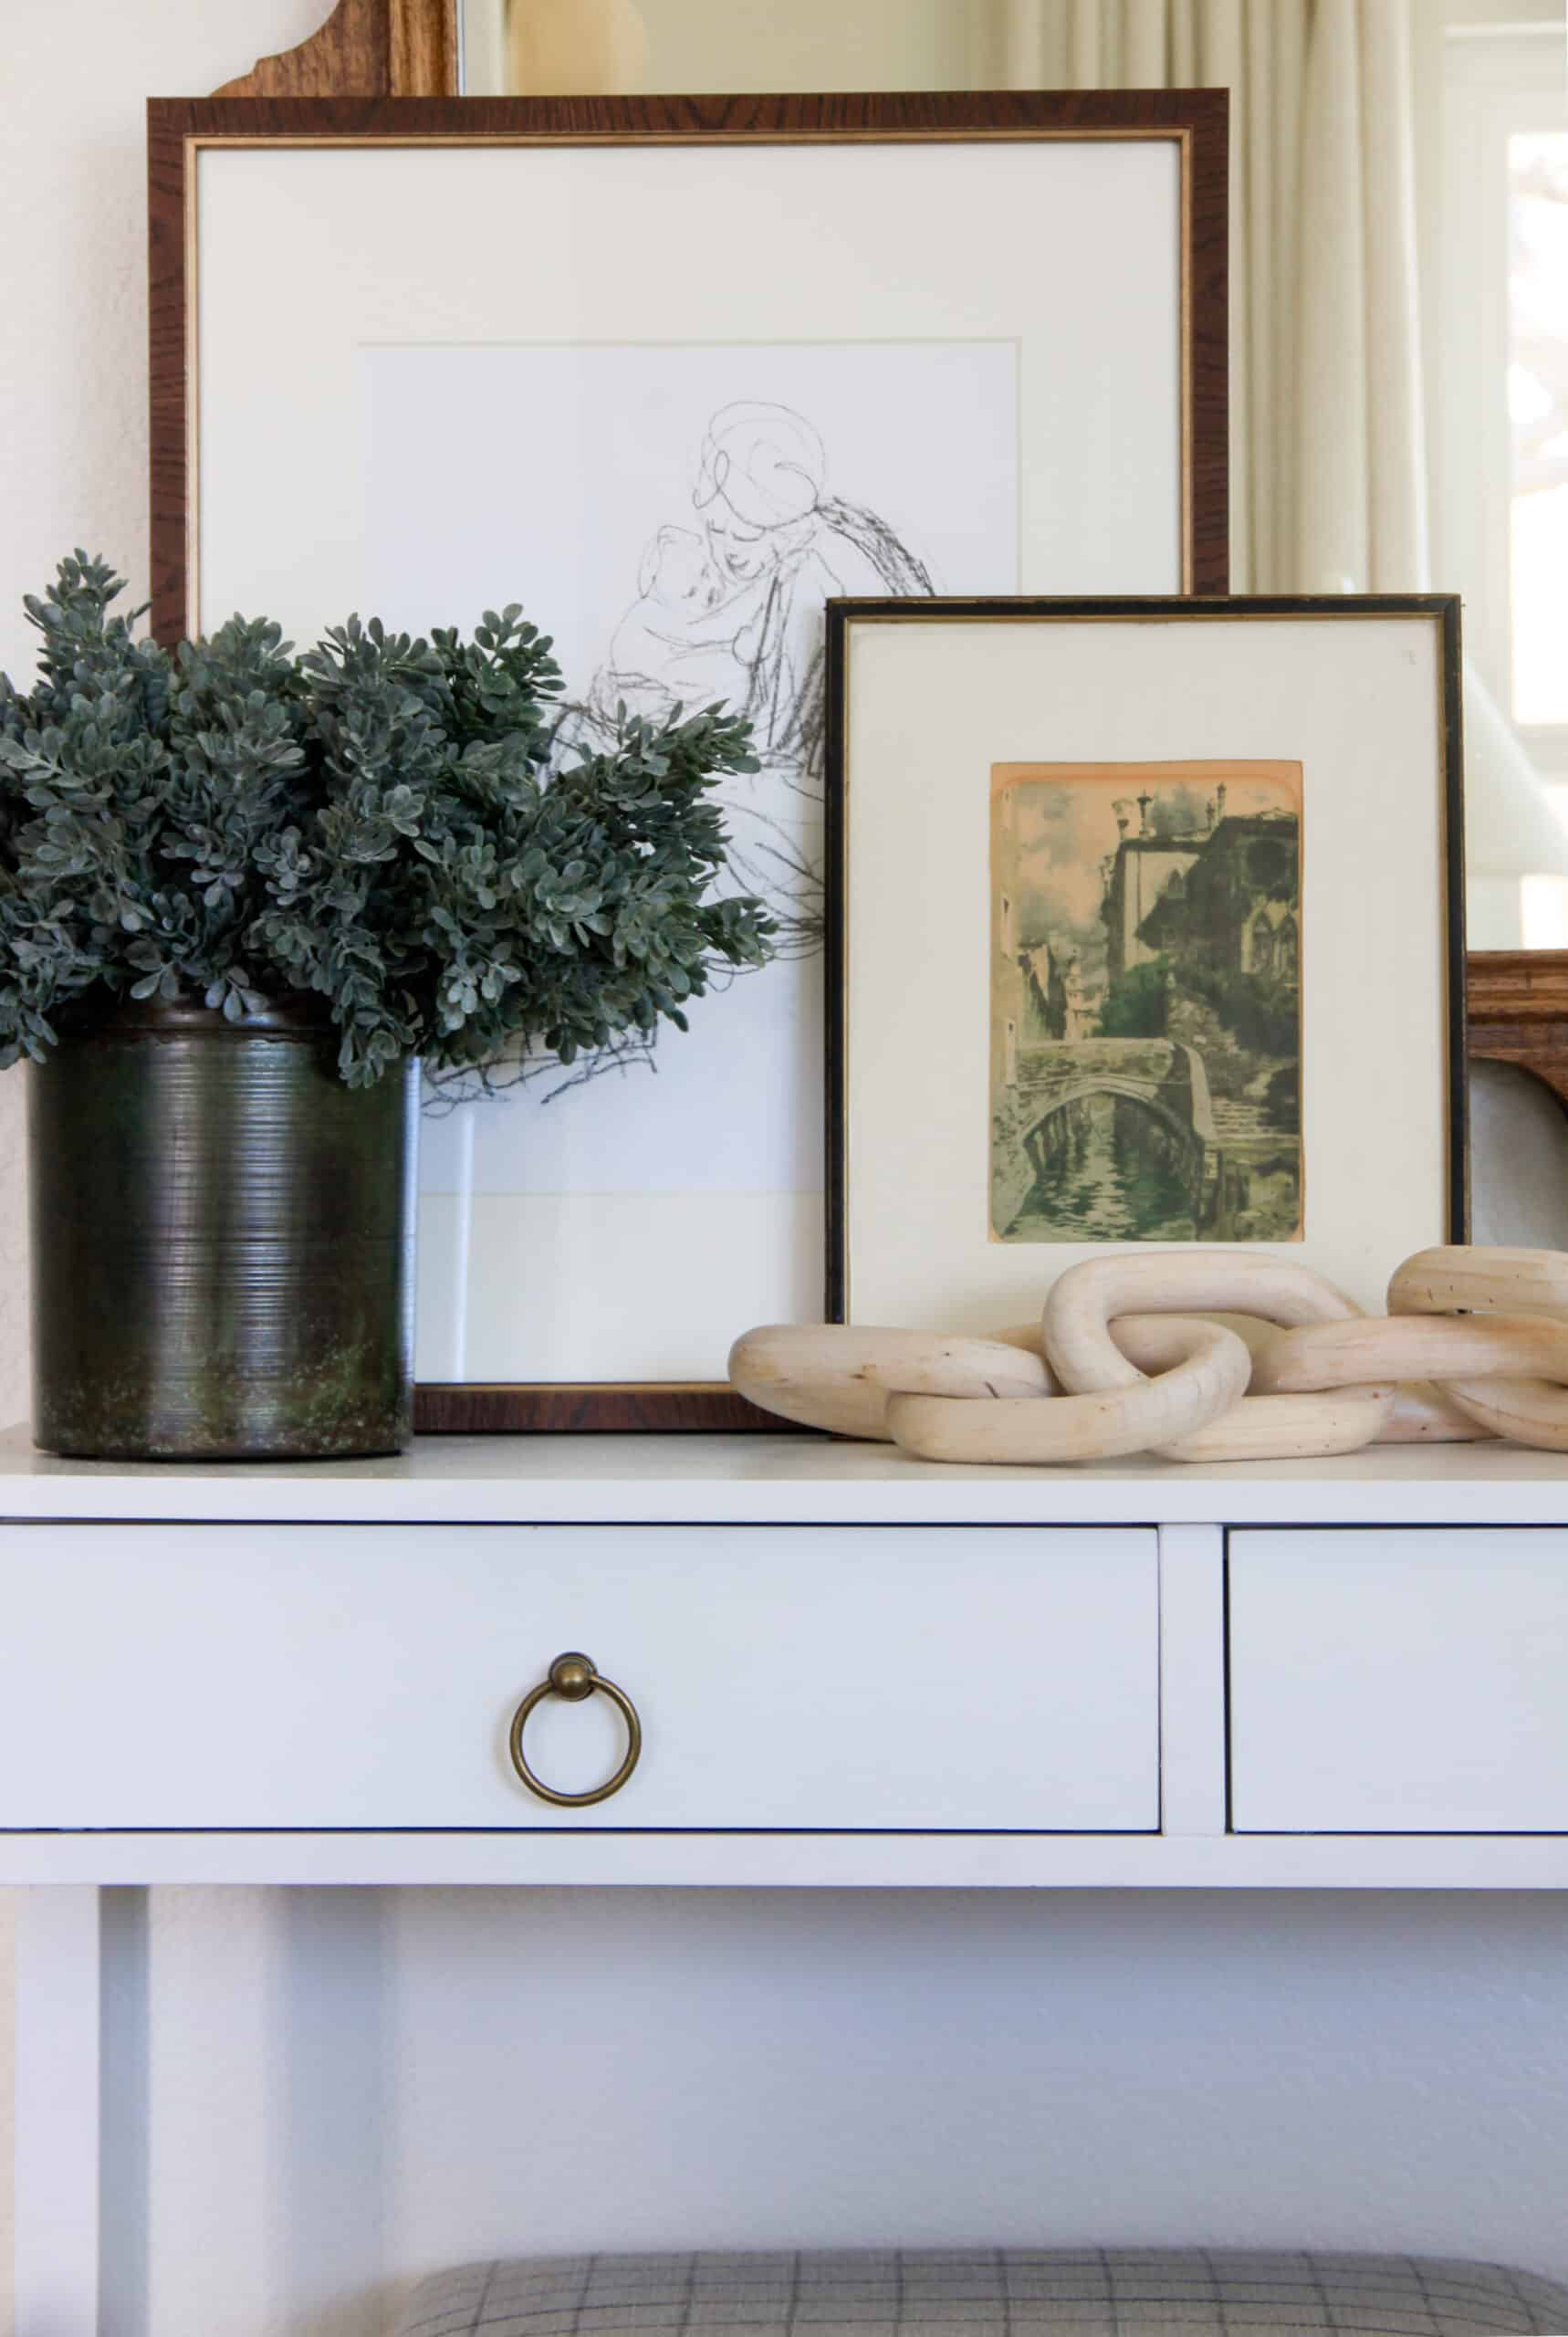 closeup of figure drawings and styled console table